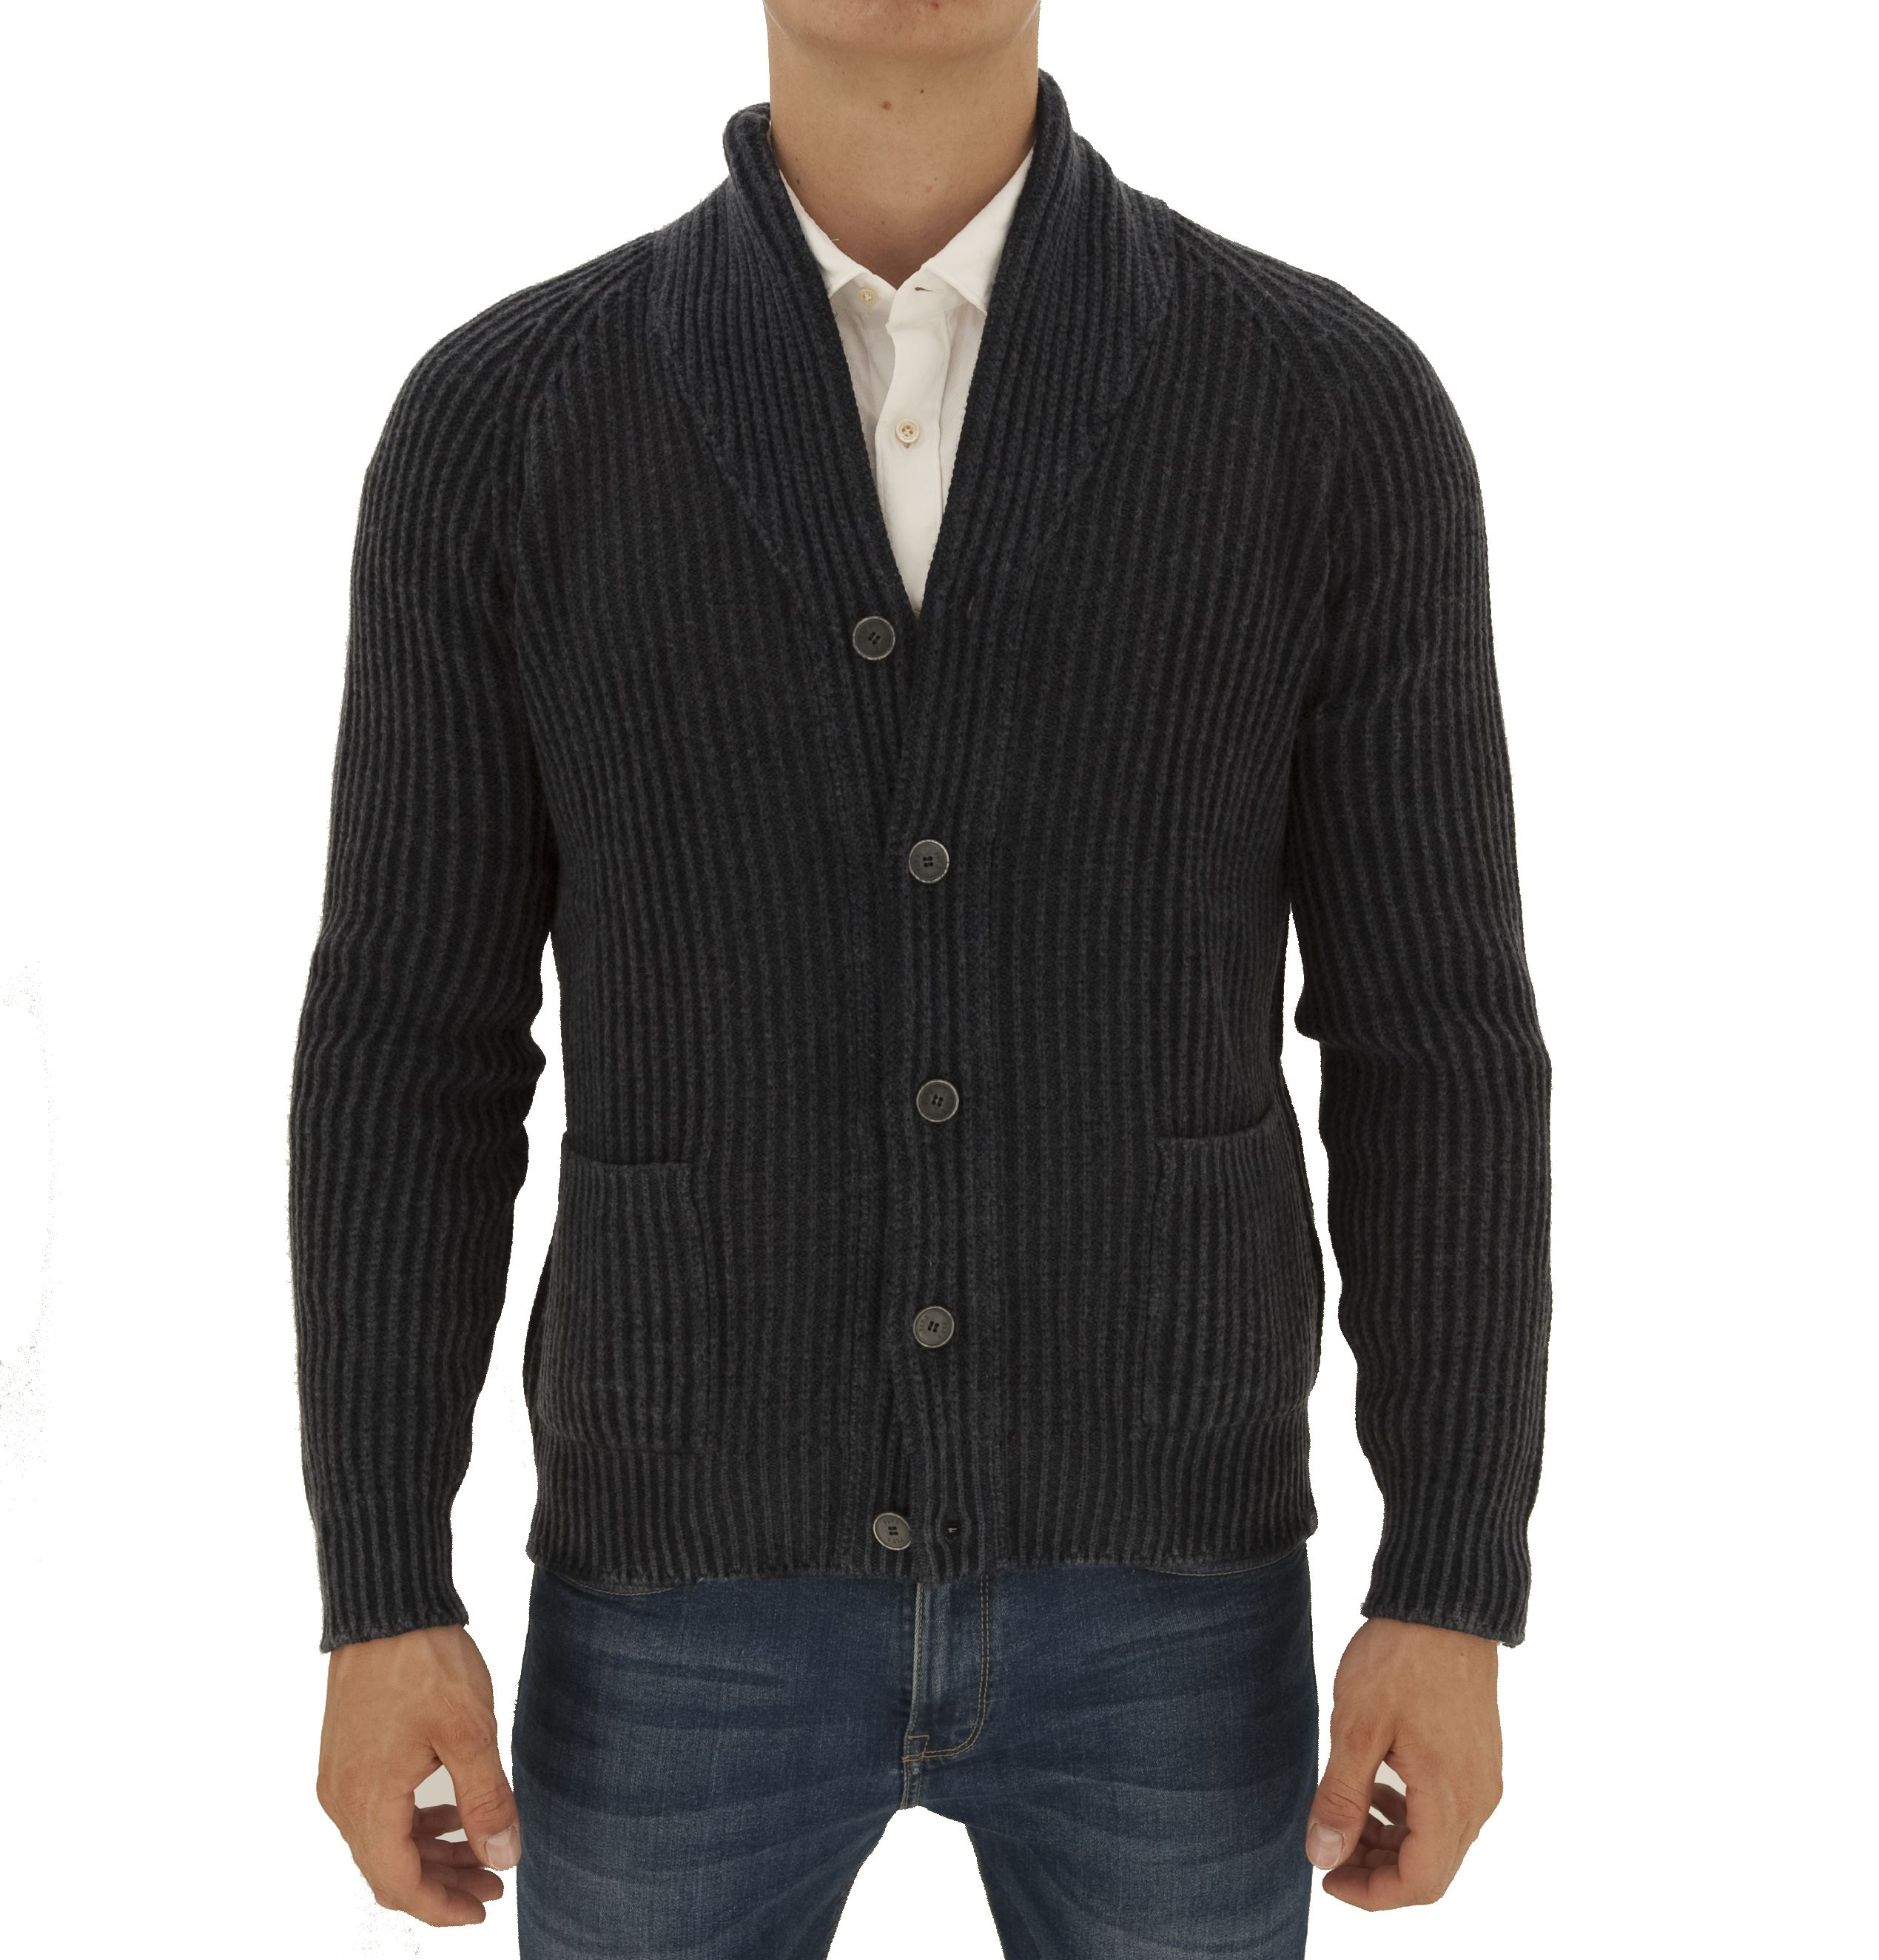 Picture of Tamata rib knitted cardigan